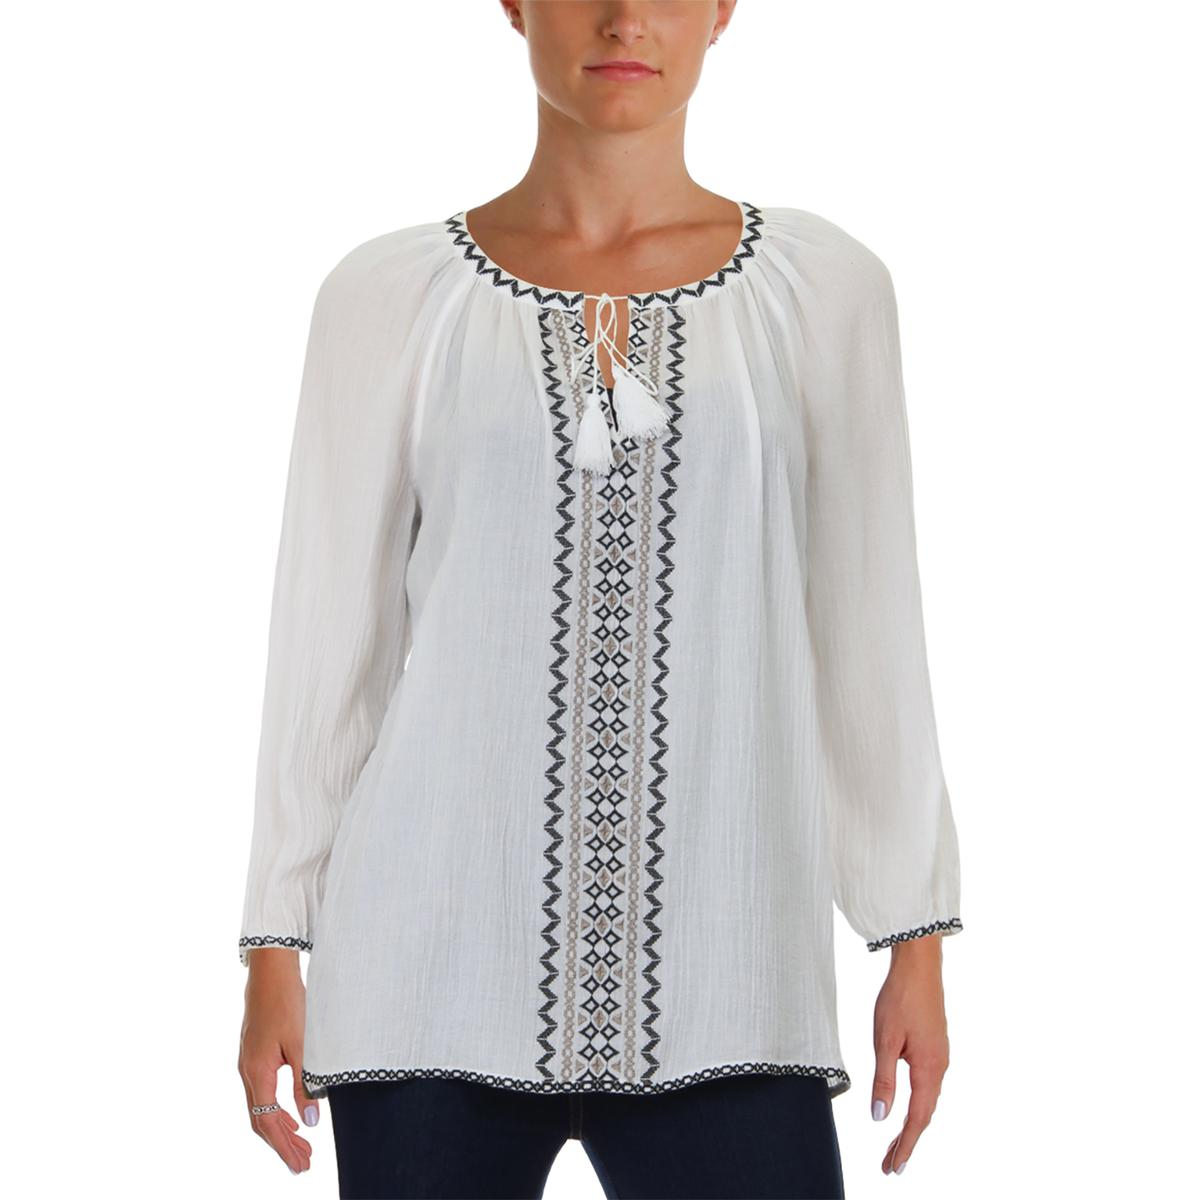 92d8c0fc7d8 NYDJ Womens White Embroidered Keyhole Pleated Peasant Top Blouse XS BHFO  7764. About this product. Picture 1 of 4  Picture 2 of 4  Picture 3 of 4 ...